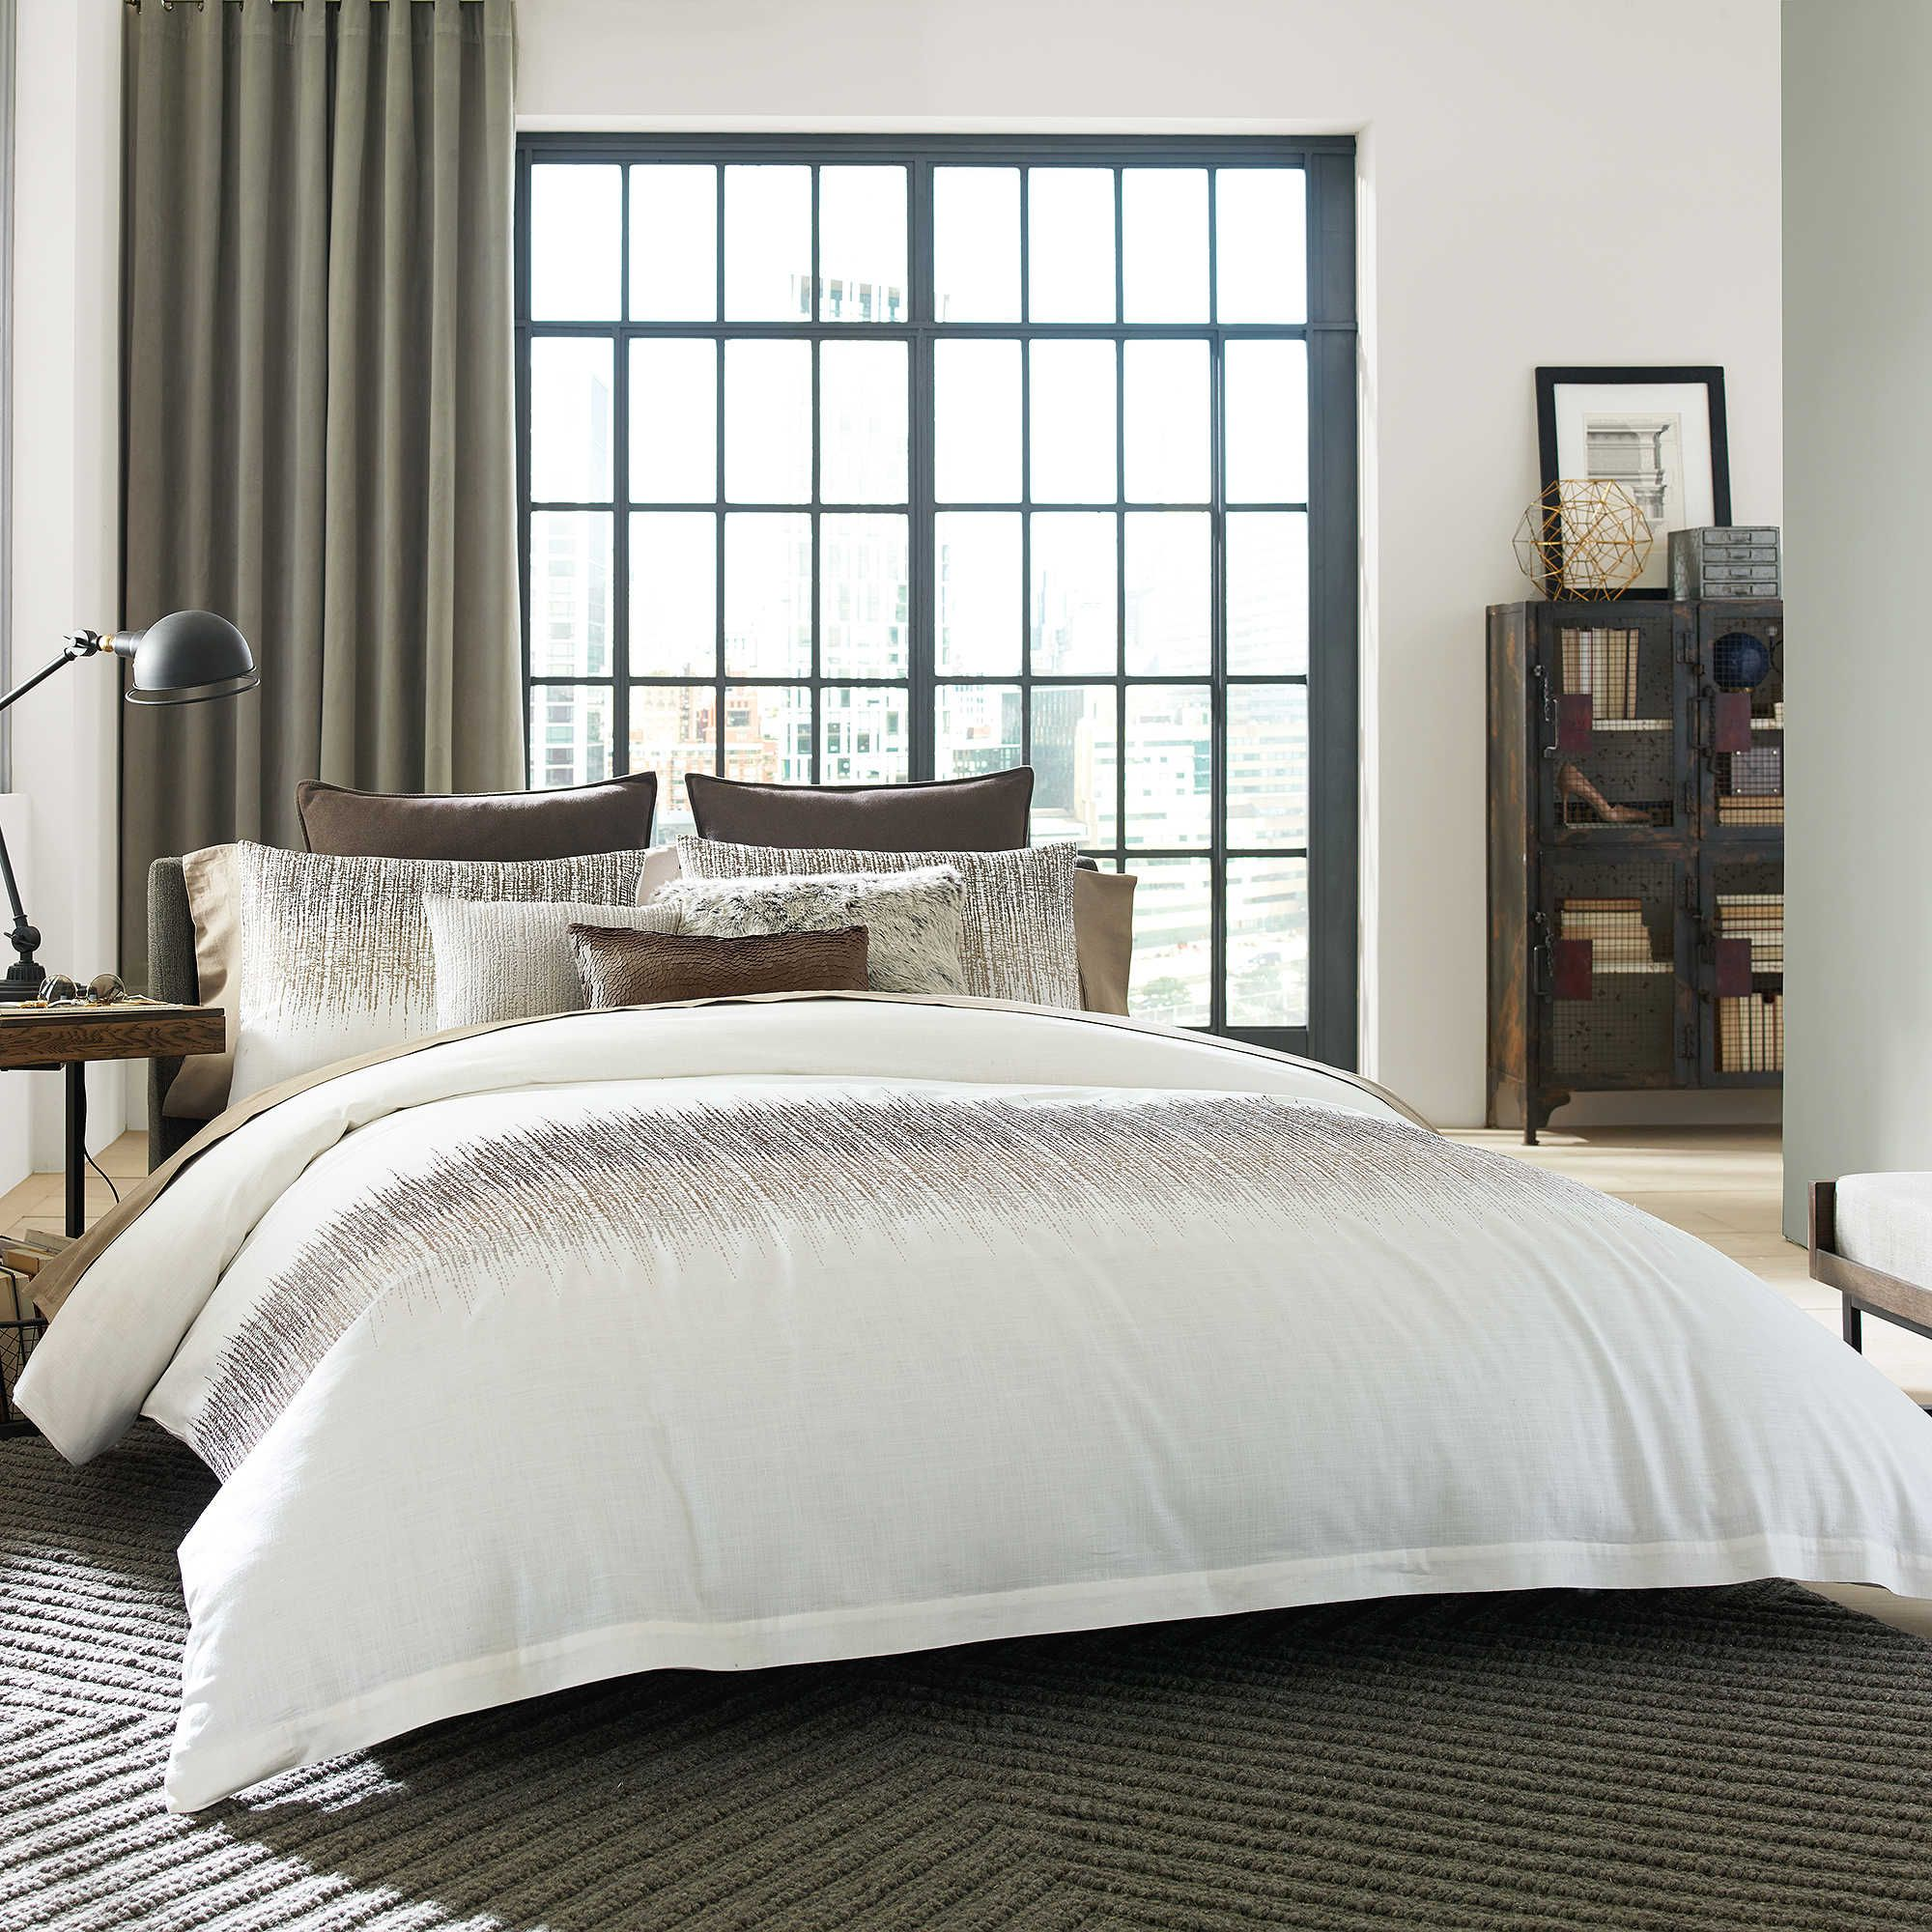 Kenneth Cole Reaction Home Etched Duvet Cover In Ivory Dorm Room